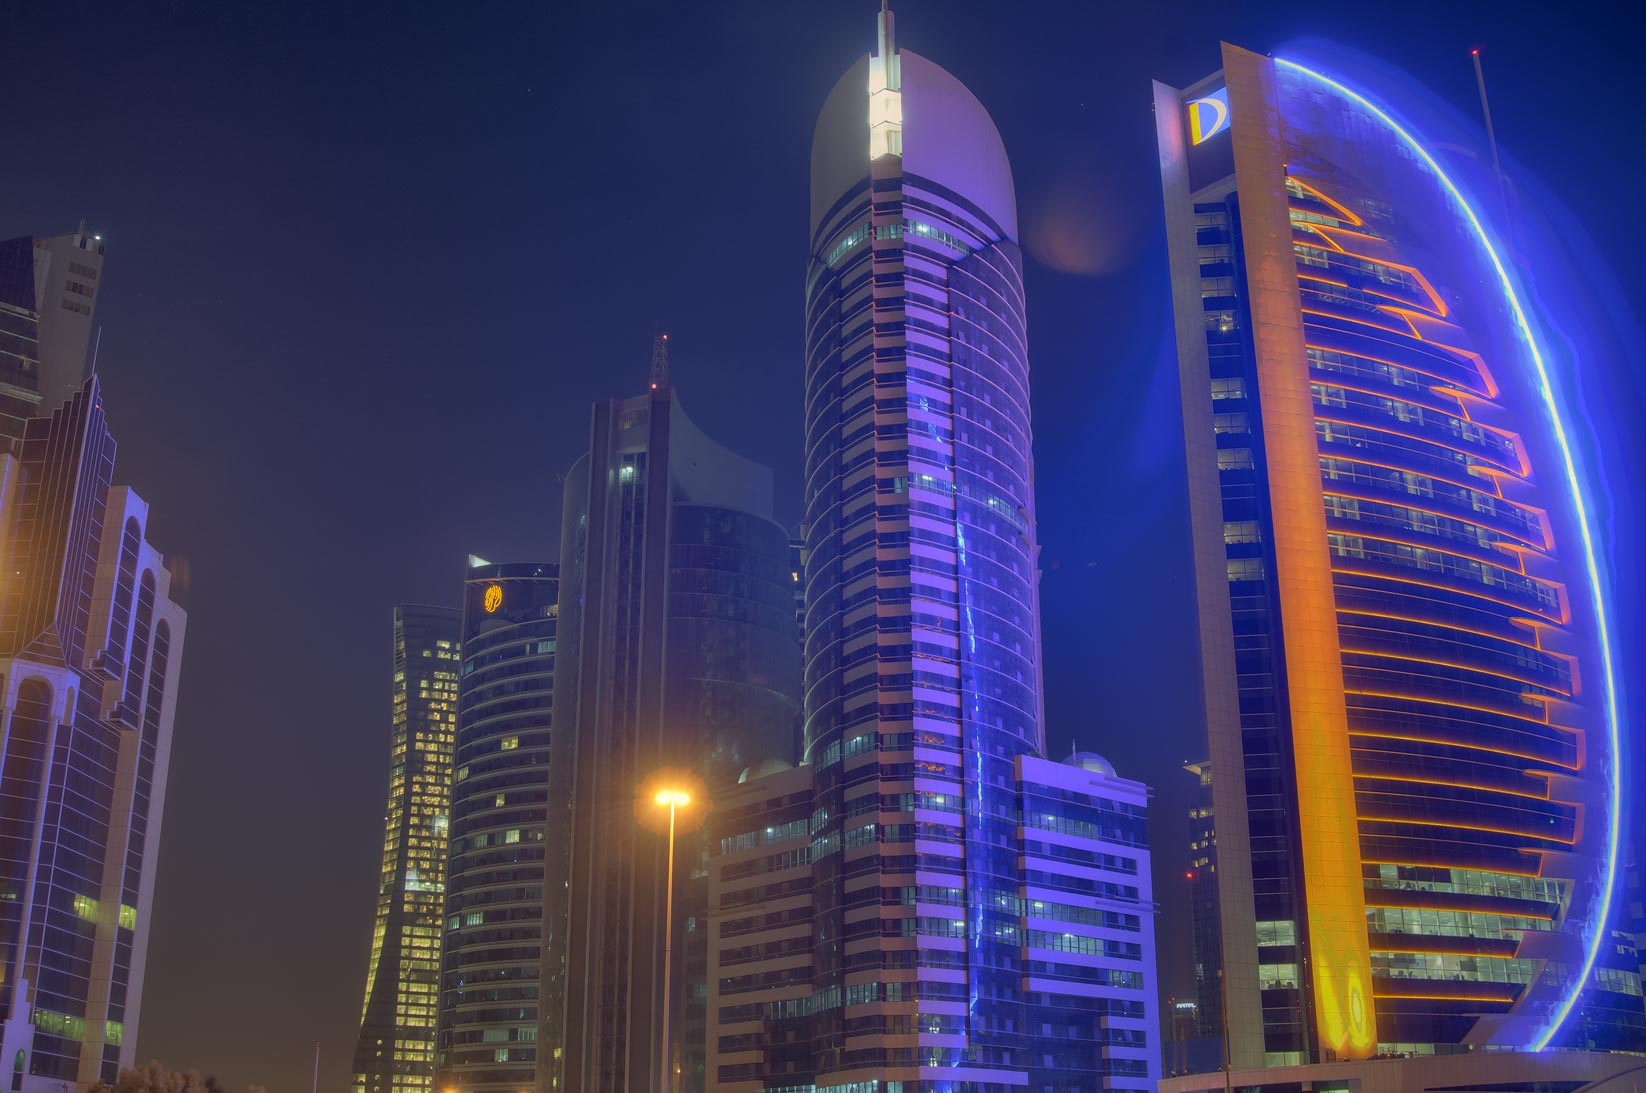 Ramez Tower and Doha Bank in West Bay from Sheraton Roundabout. Doha, Qatar